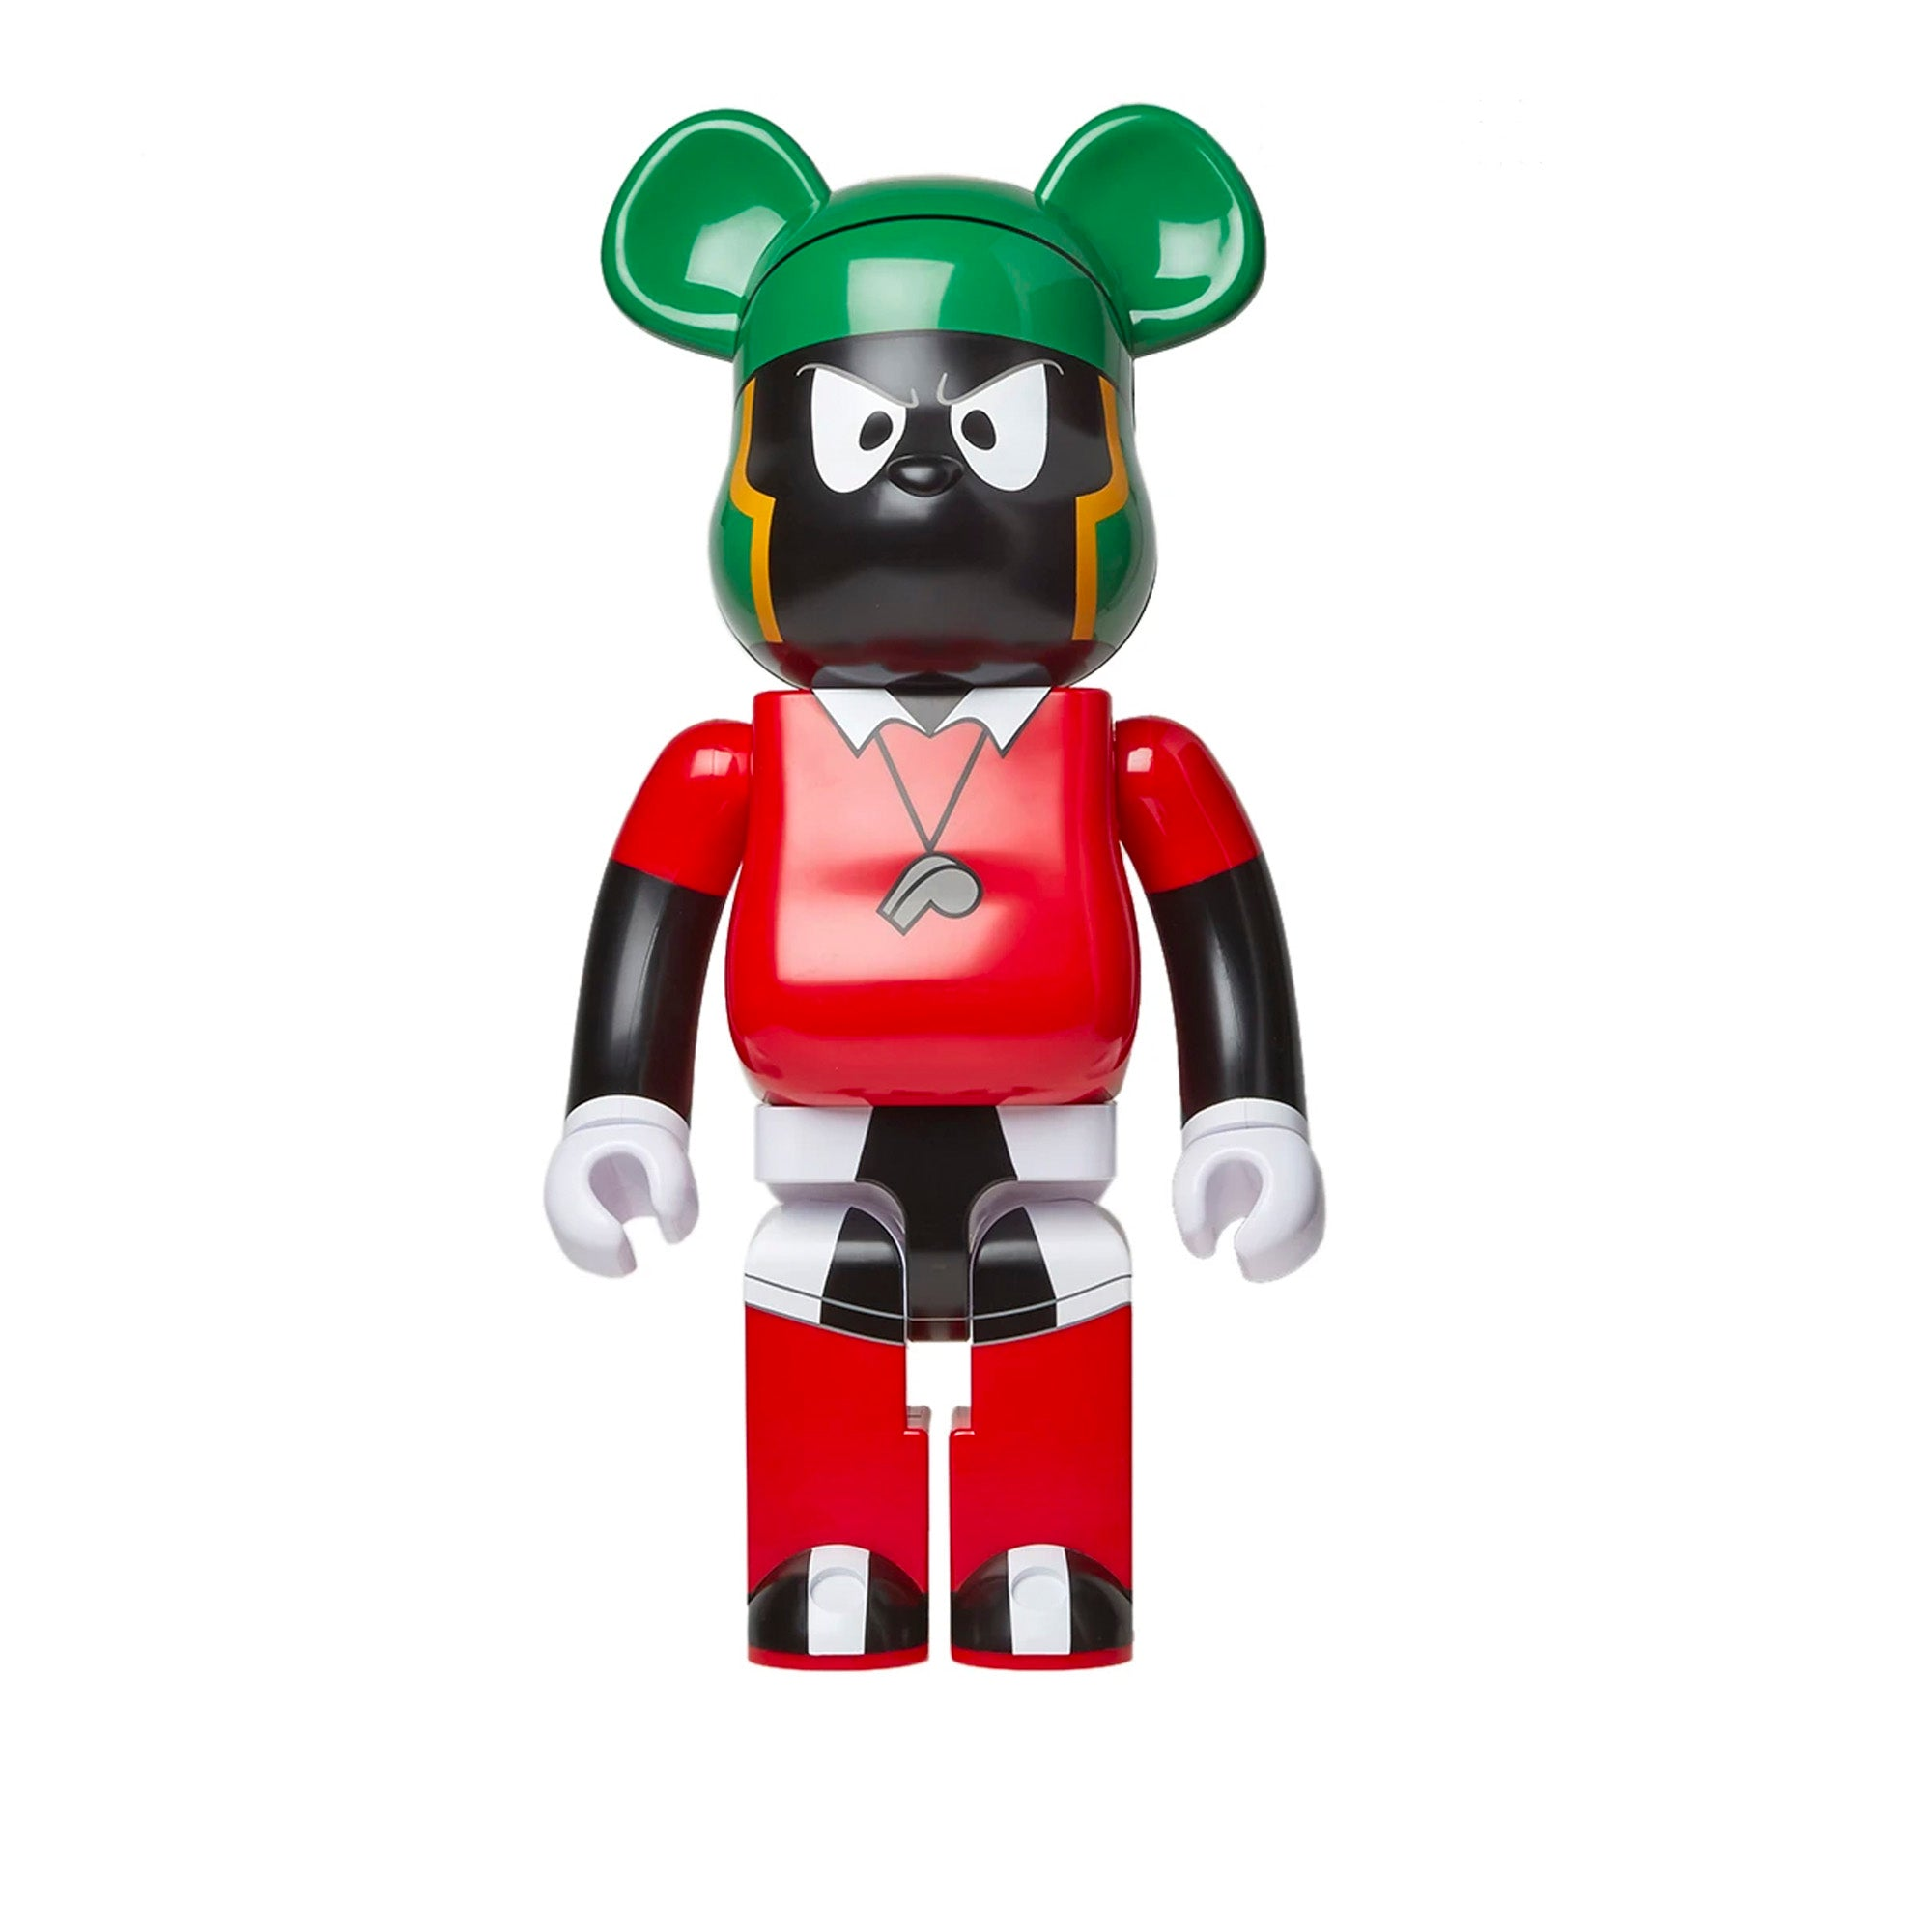 dee0ba00a5c Medicom x Marvin the Martian Be@rbrick 1000%